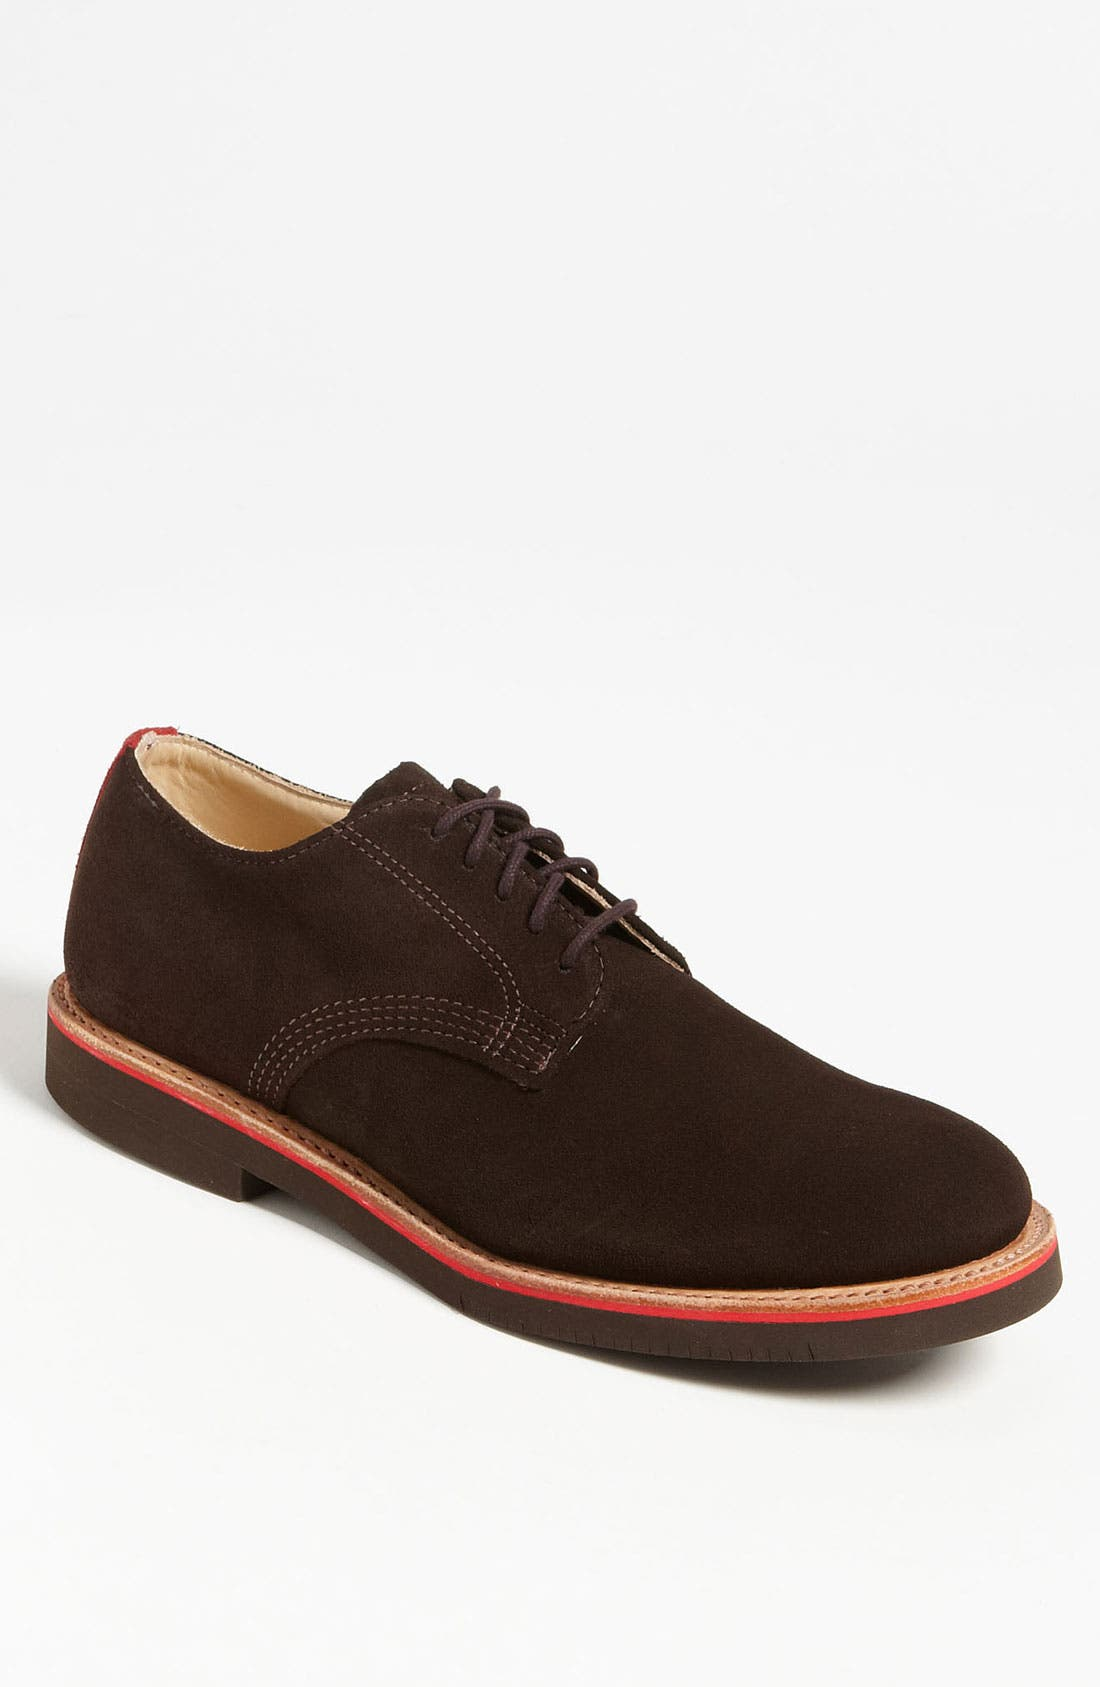 Alternate Image 1 Selected - Walk-Over 'Derby' Buck Shoe